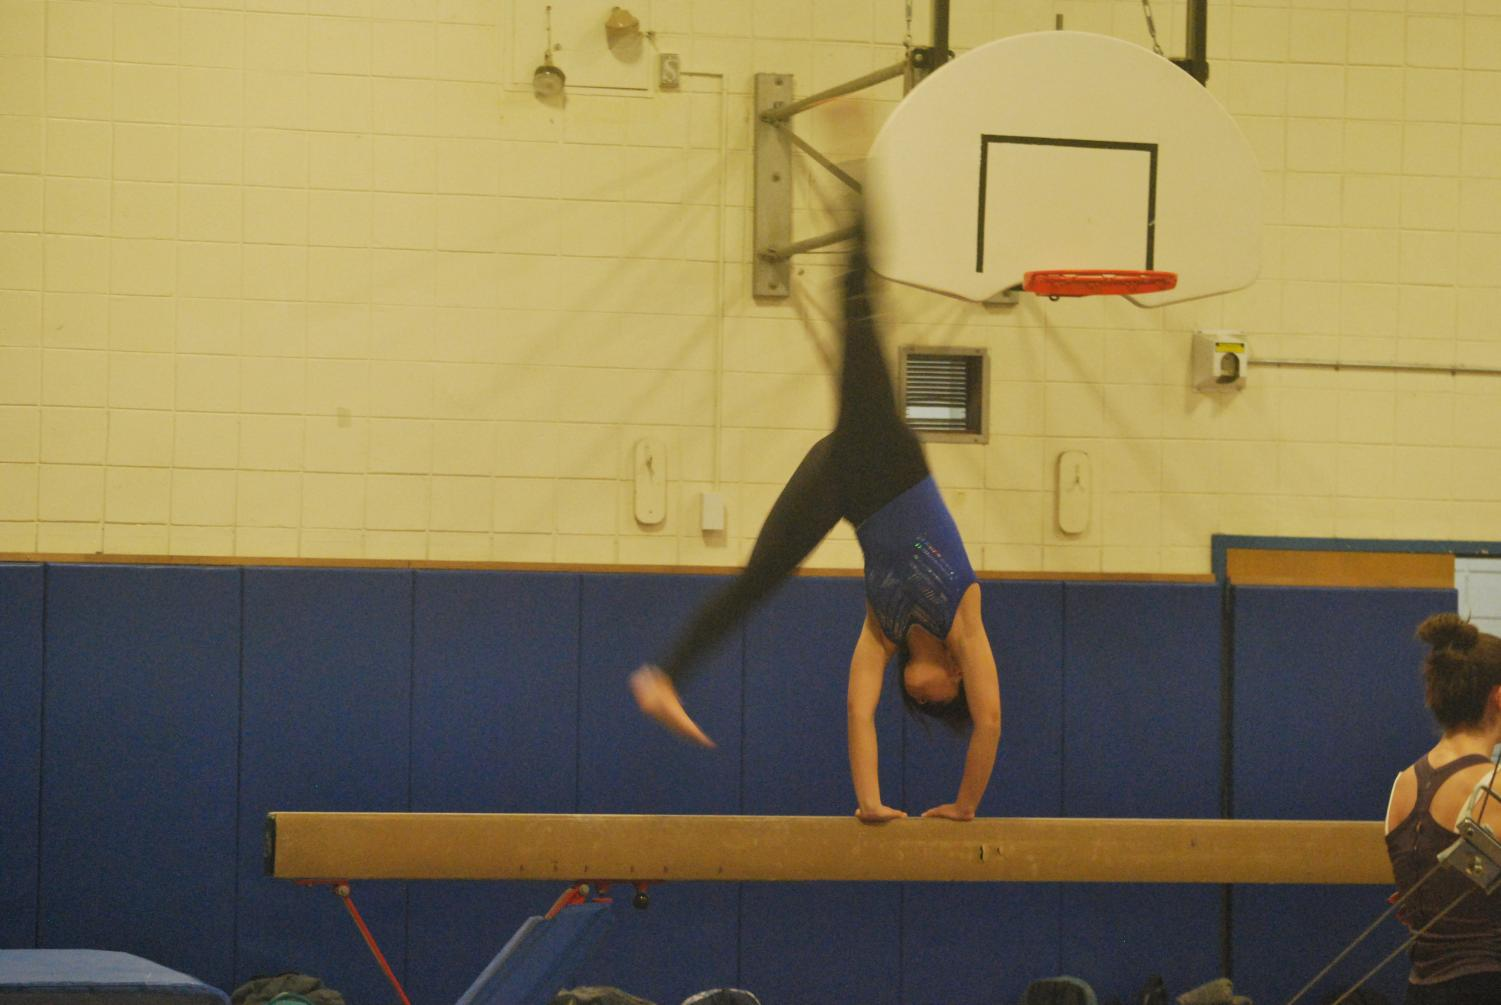 Freshman Kayla Quan practices on the balance beam, preparing for Port's first meet against Great Neck South.